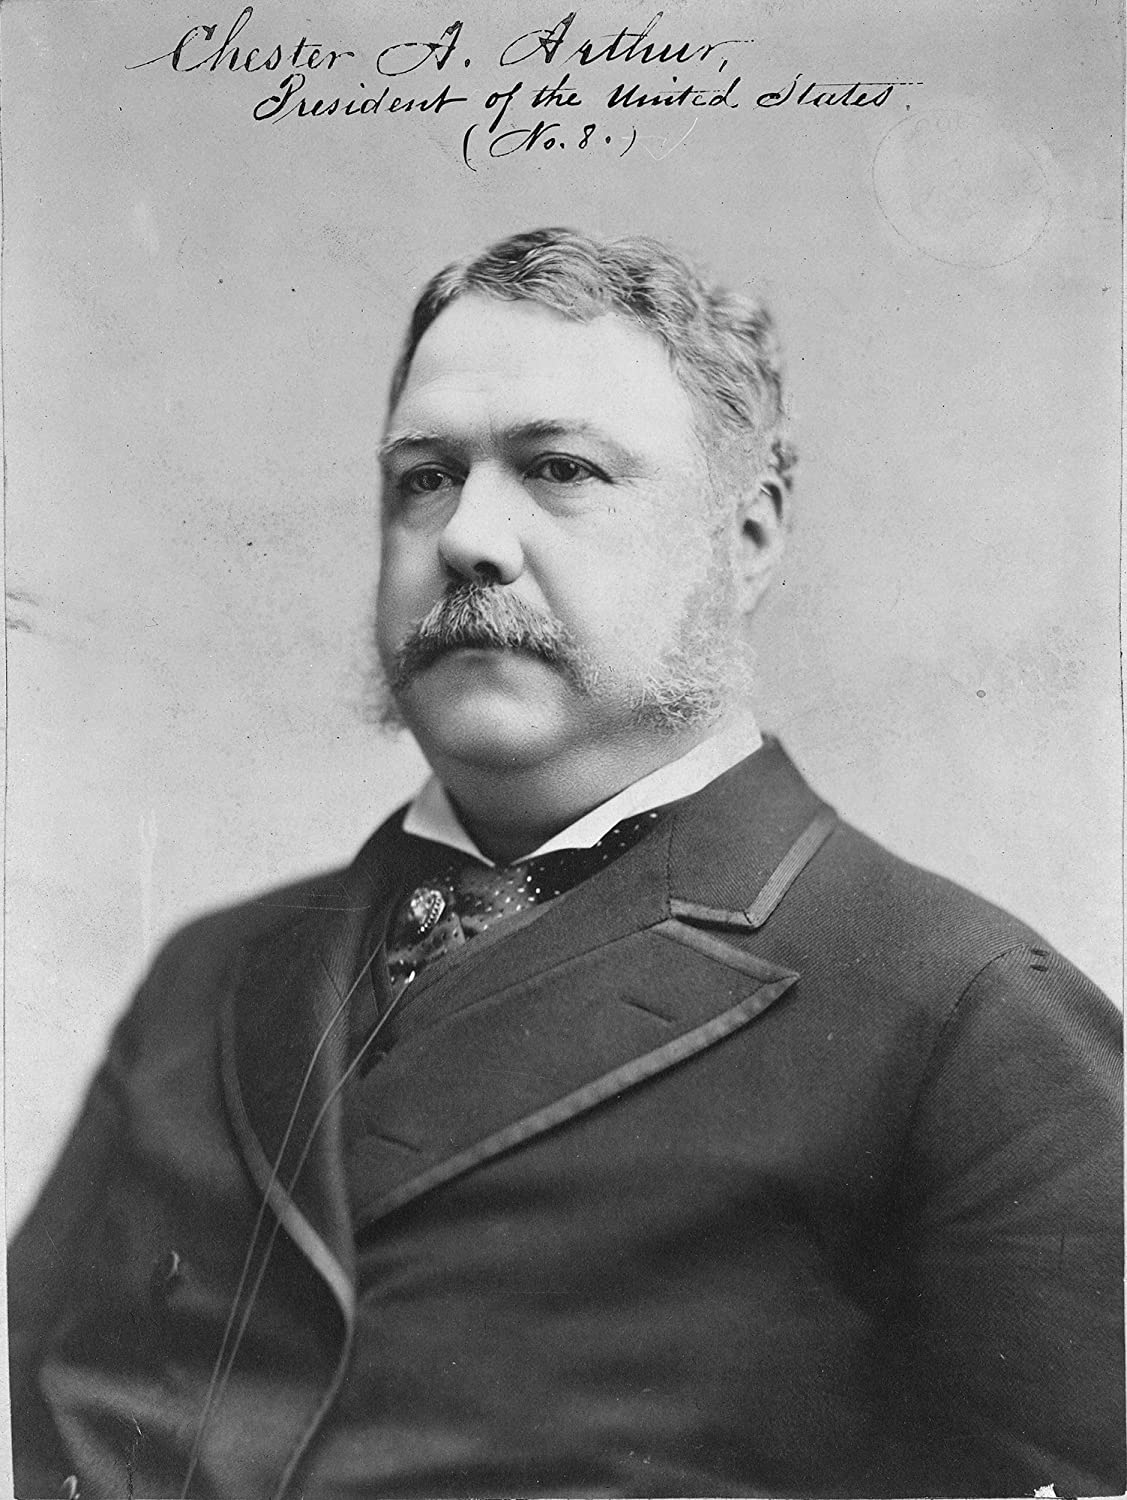 Chester A. Arthur Photograph - Gorgeous 1882 US from Max 79% OFF Artwork Historical